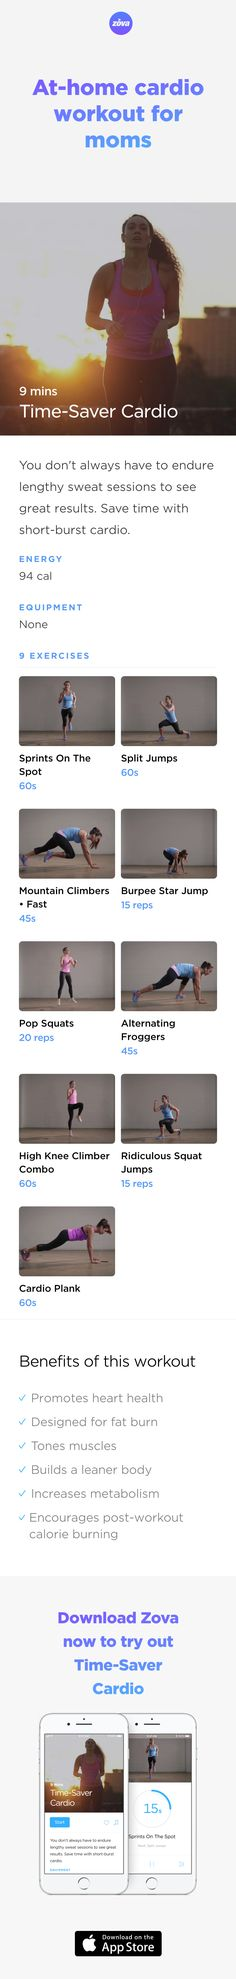 Short and effective - these are of our favourite words when it comes to a workout session and this workout is exactly that. In less than eight minutes, you'll boost your cardio, burn fat and tone muscle for a leaner, stronger-looking body. Plus, the exercises are designed for maximum post-workout calorie-burning workout! #weightloss #workout #fitness #HIIT #fullbody #sweat #bodyweight #calories #partner #couple